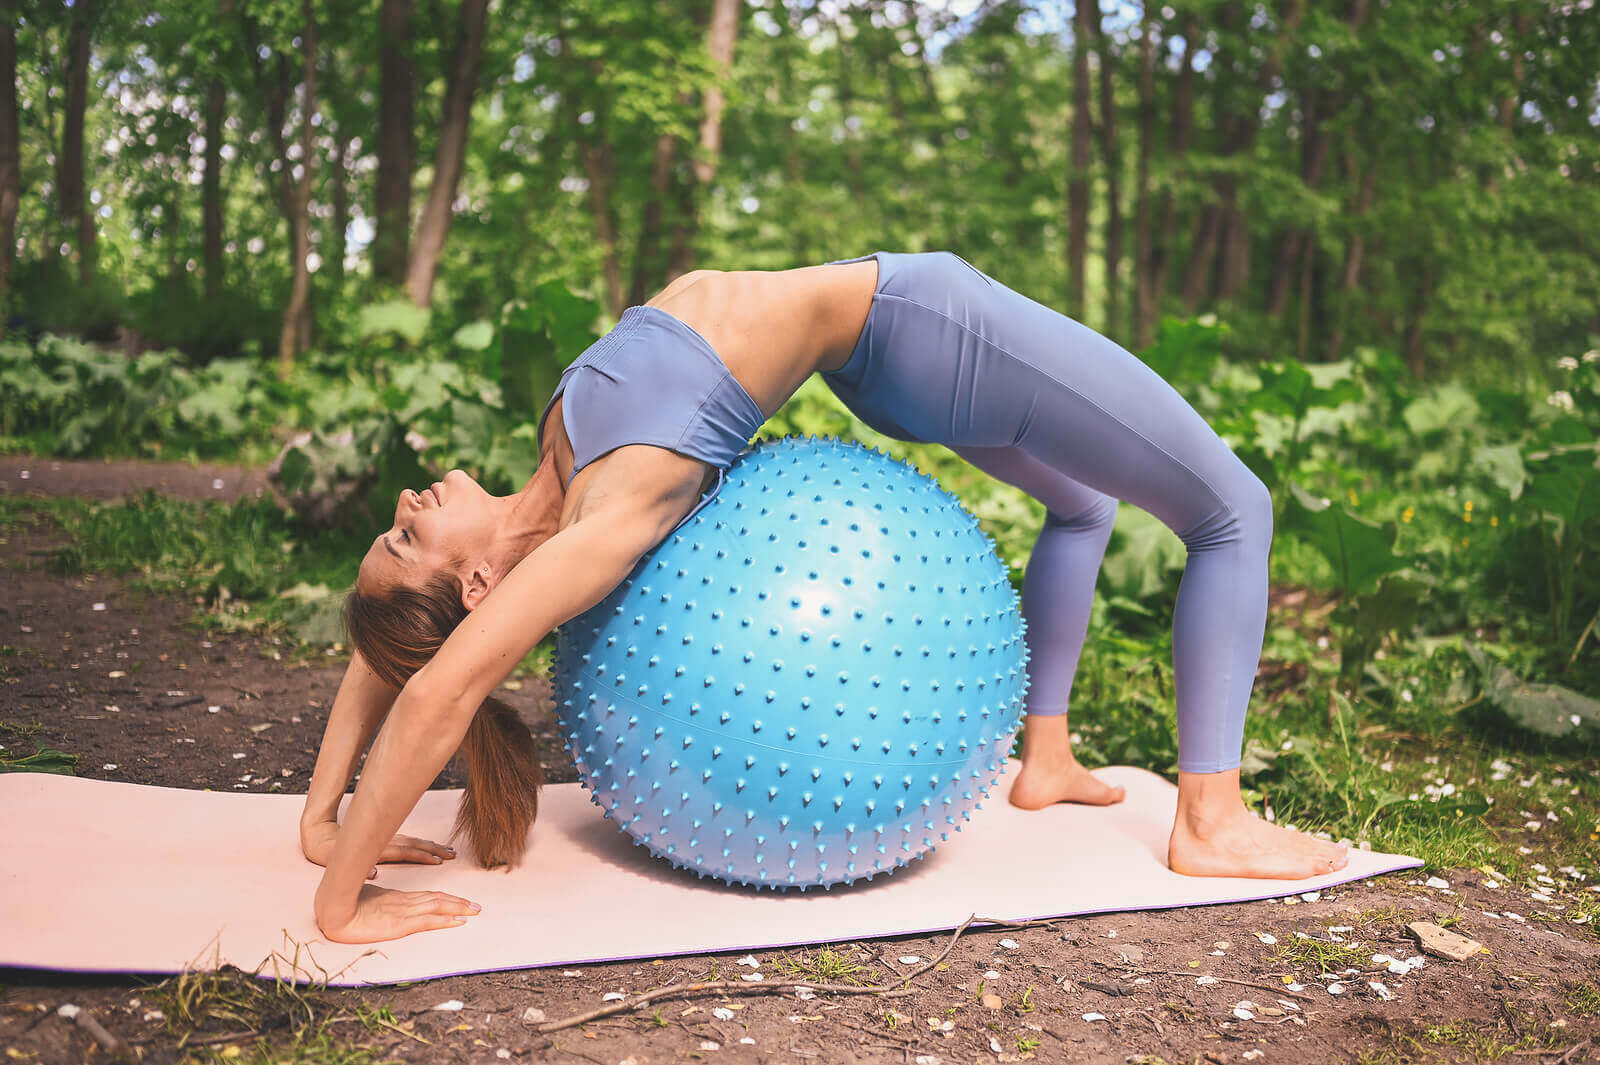 A woman with an exercise ball.